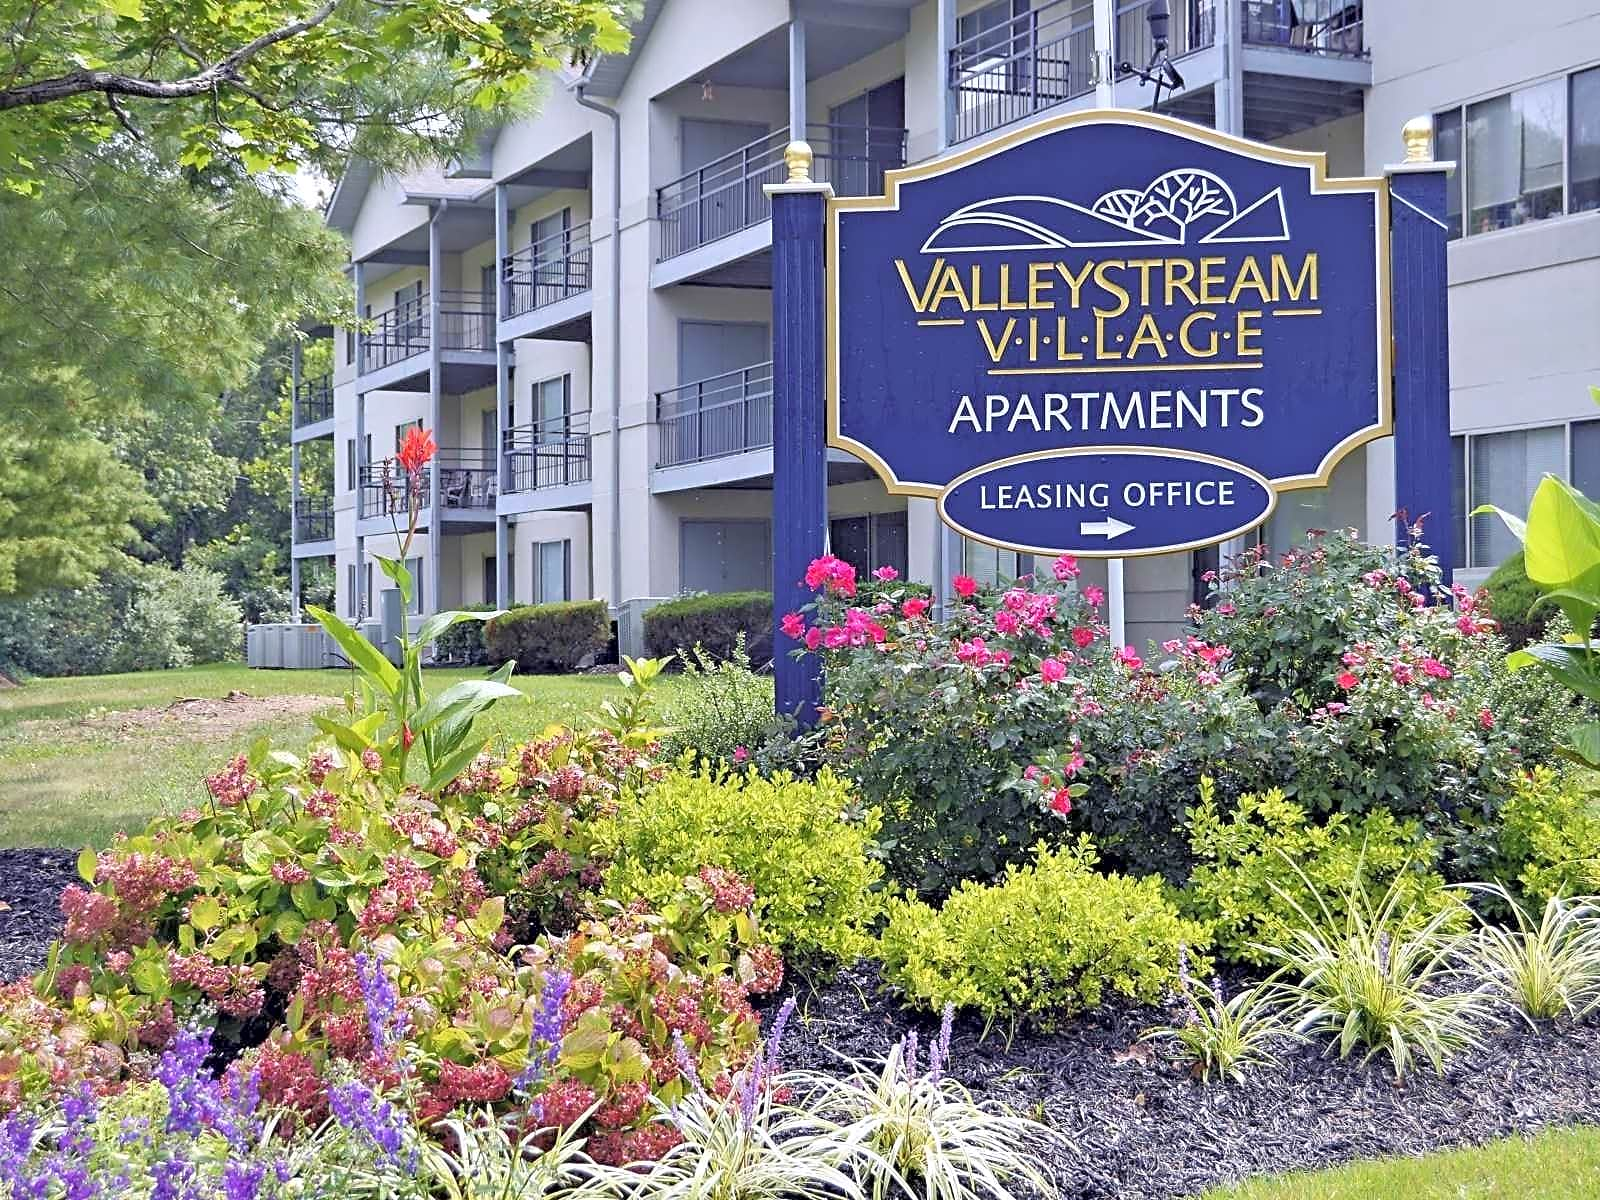 Apartments Near Delaware Valley Stream Village Apartments for University of Delaware Students in Newark, DE